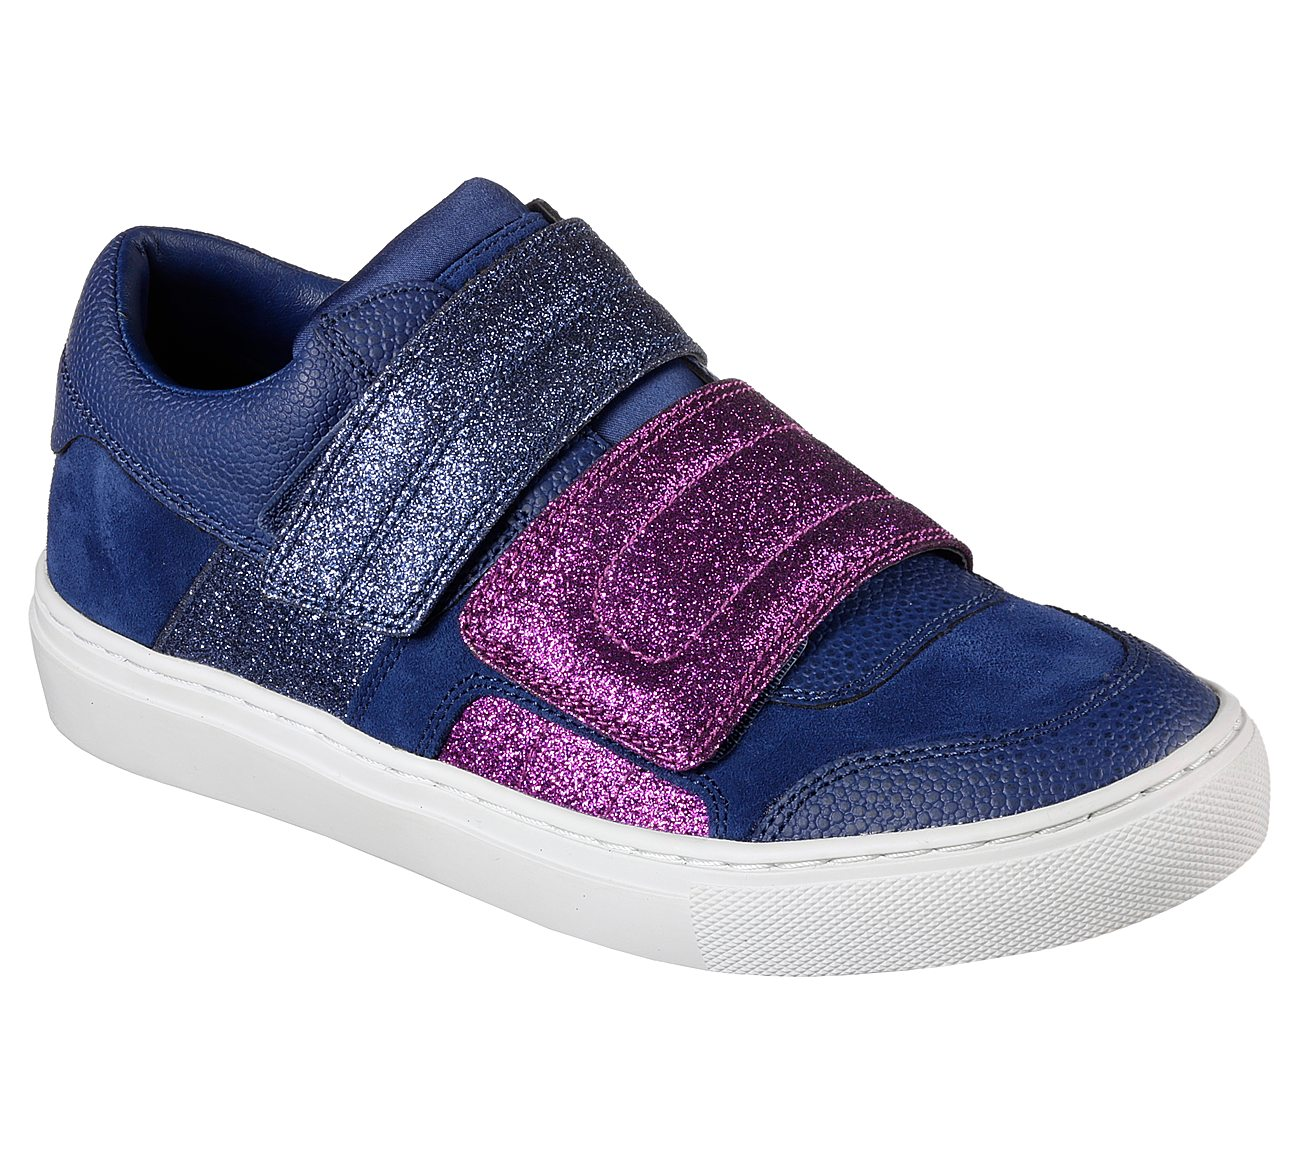 City S Shoes Soft Women